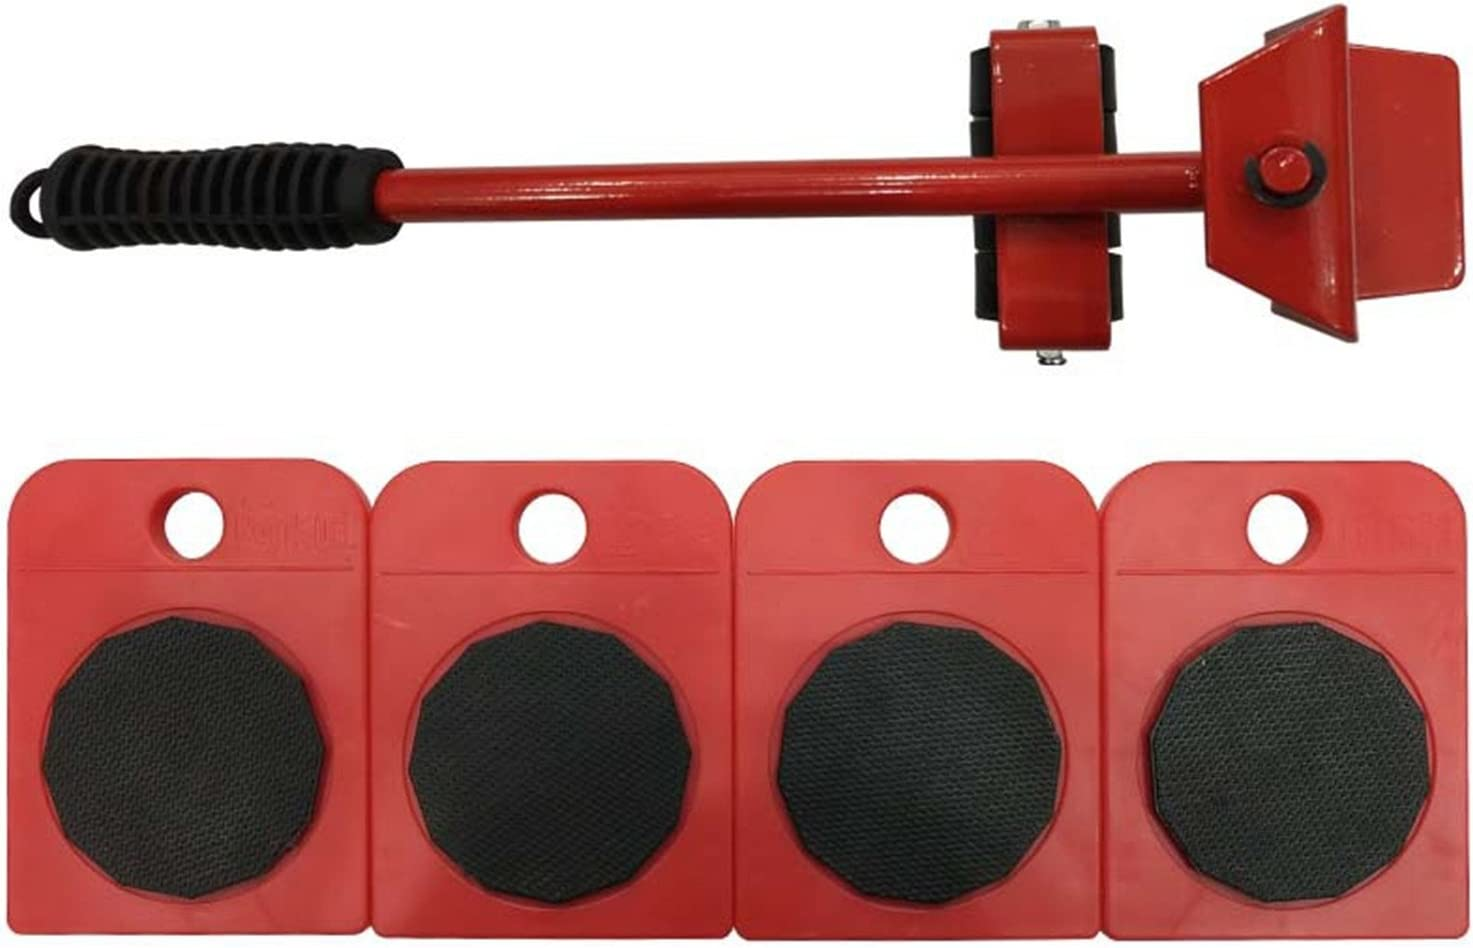 UBEI Furniture Lifter Portable Heavy Lifting Device Furniture Moving Device Mover Transport Set for Home Red